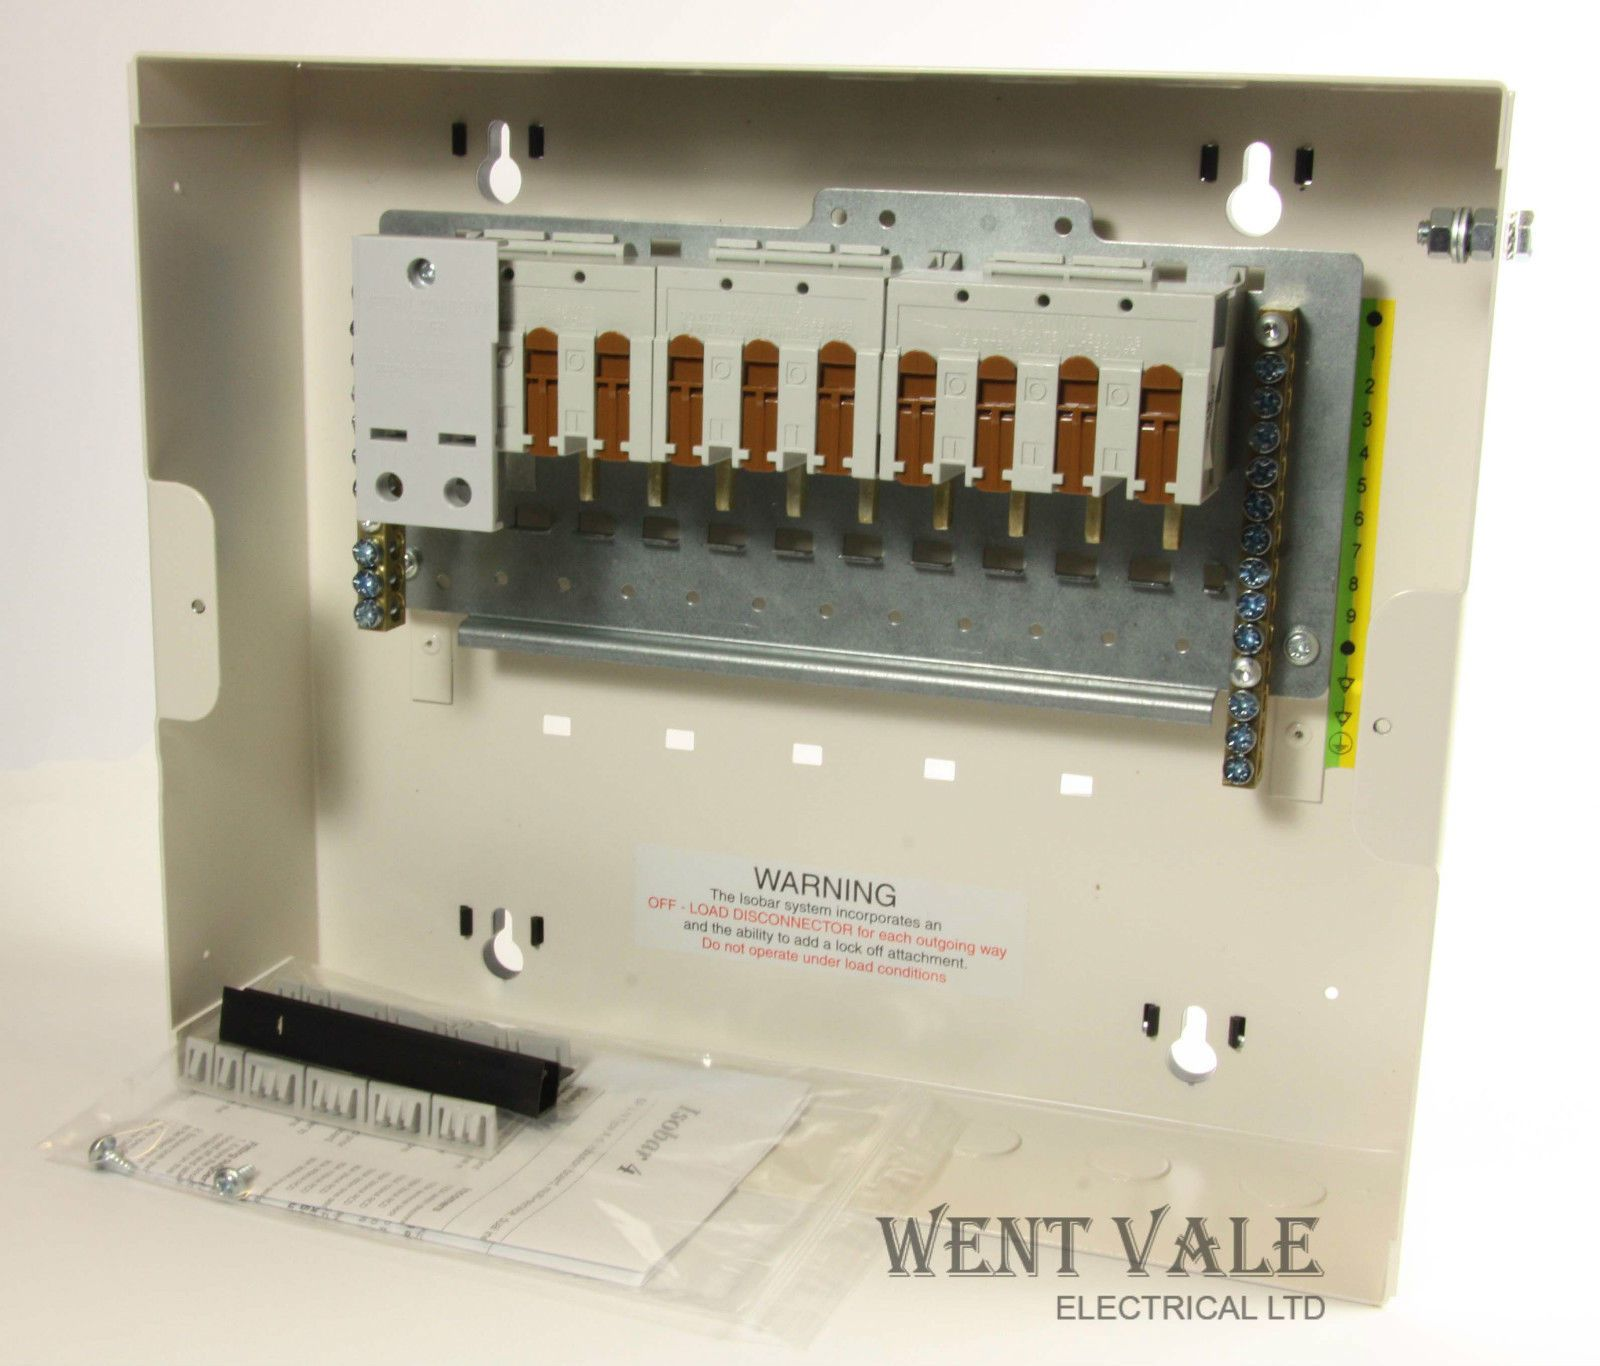 electric switch wiring with Schneider Isobar 4c Mgan 9 9 Way Single Pole Neutral Distribution Board New 12491 P on mander 2000 Remote Control further Solutions 3 furthermore 5230453k70a7fb41 besides Aircraft Electric System Testing in addition Tenby Saxon 7600 6a White Moulded Ceiling Rose New 5201 P.